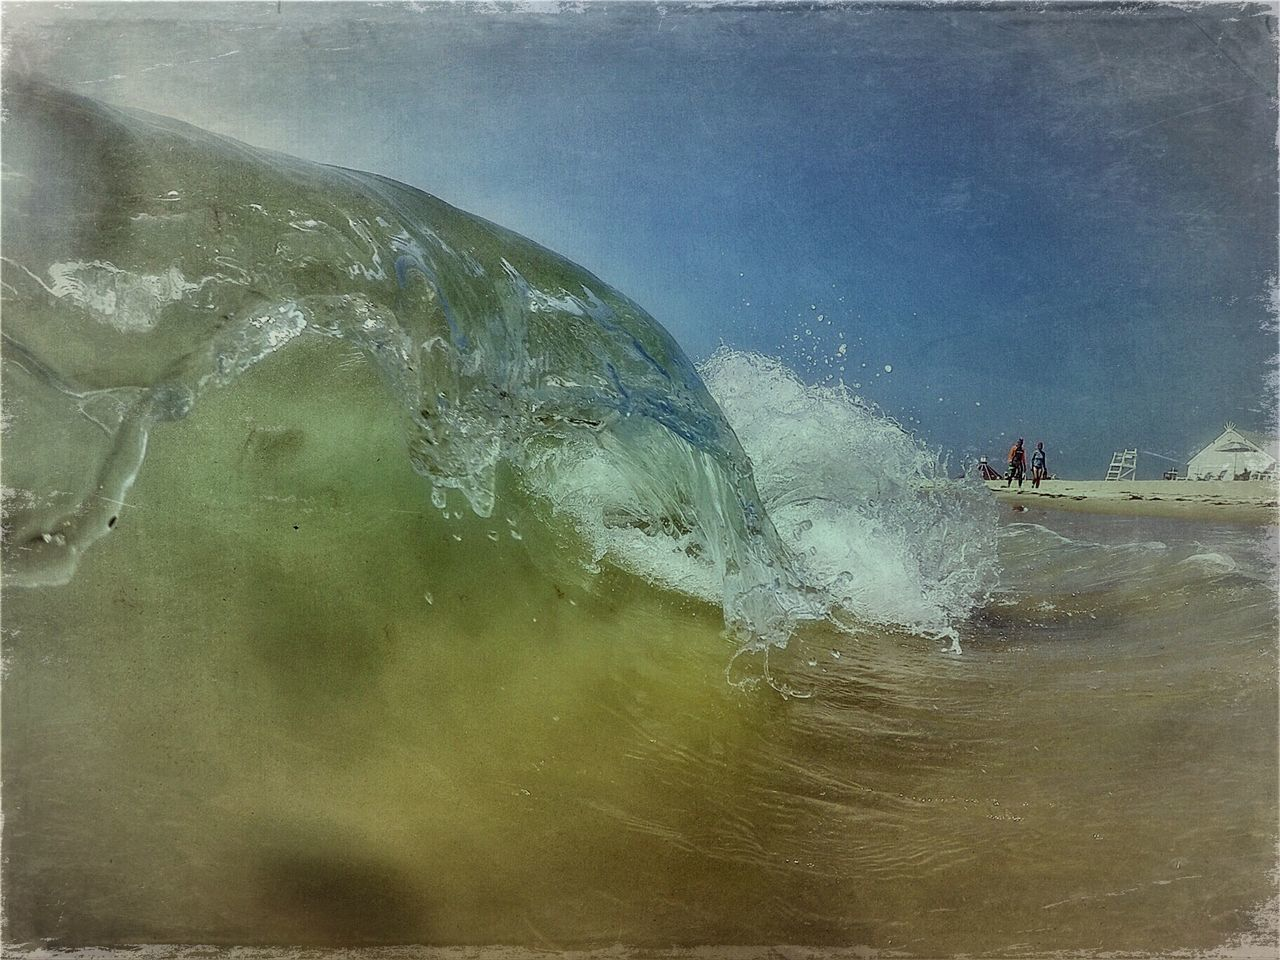 Where we belong 🙏 Misquamicut Beach, Rhode Island Shot with GoPro hero 4, edited on iPhone 6plus eSantosStudios 9/12-2015 Waves Waves Crashing Waves, Ocean, Nature Beach Beachphotography Life Is A Beach Gopro Goprohero4 IPhoneography IPhone The Essence Of Summer